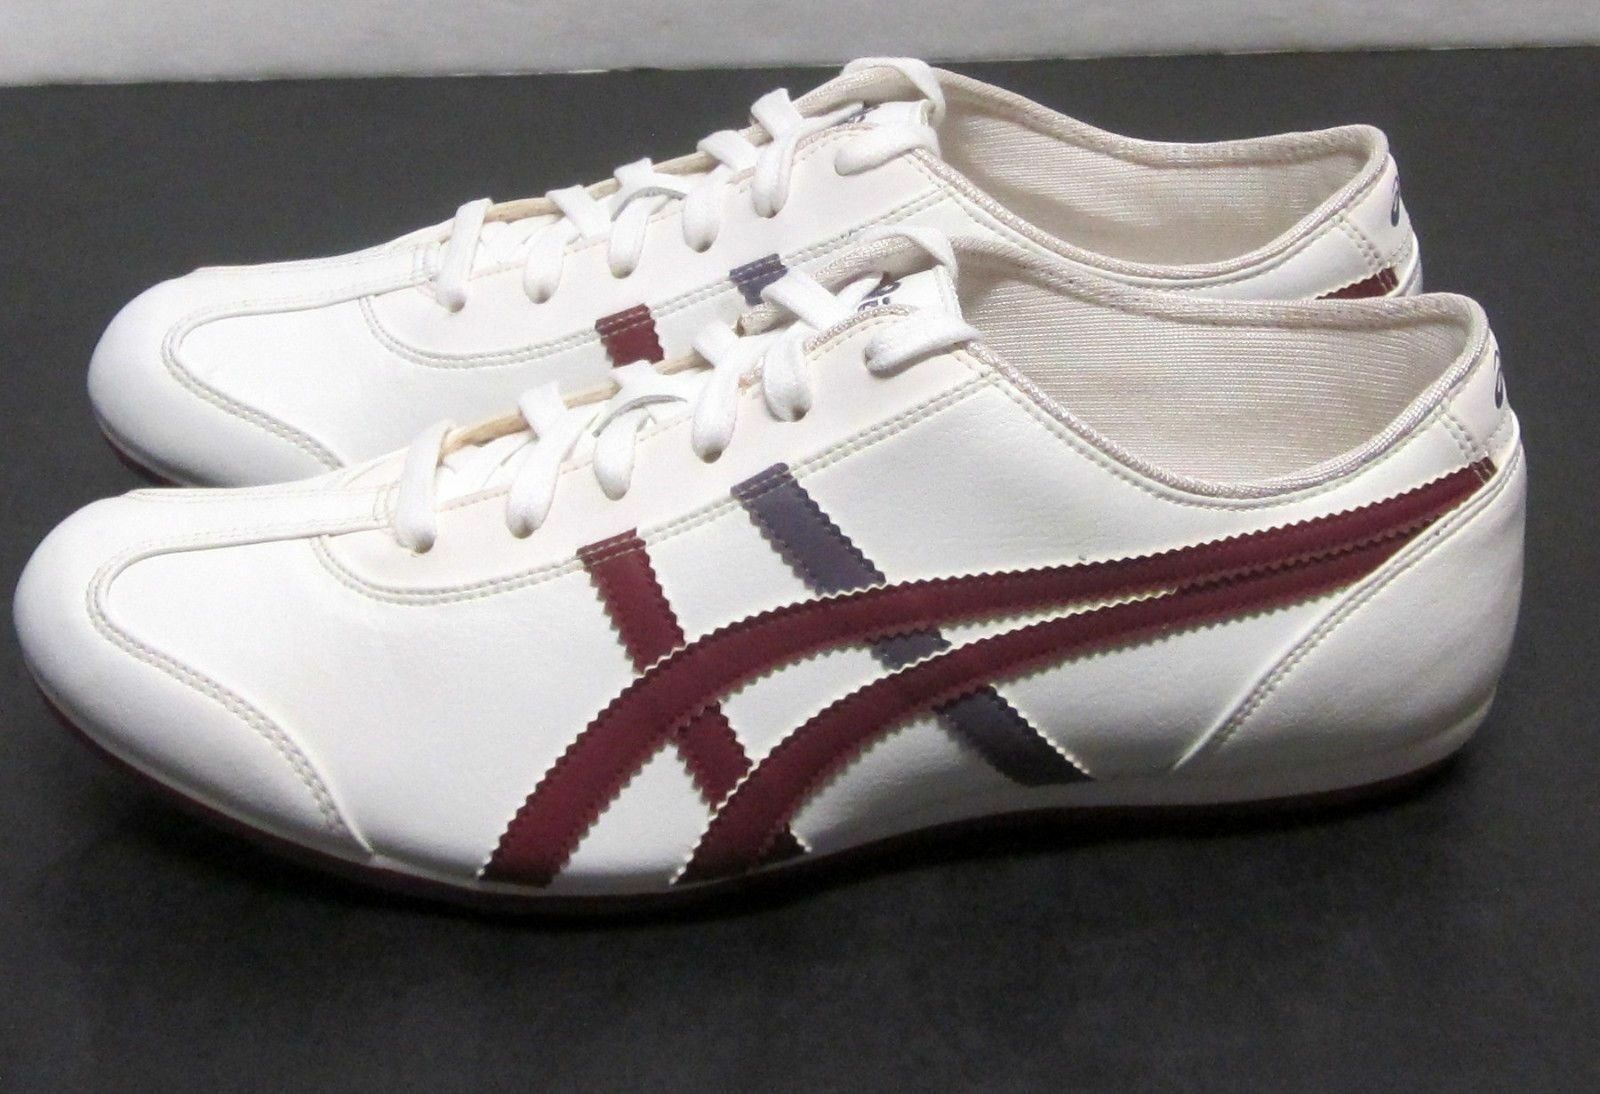 ASICS AYAME WOMEN'S (7.5) WHITE LOW SYNTHETIC LEATHER ATHLETIC SNEAKERS NWOB